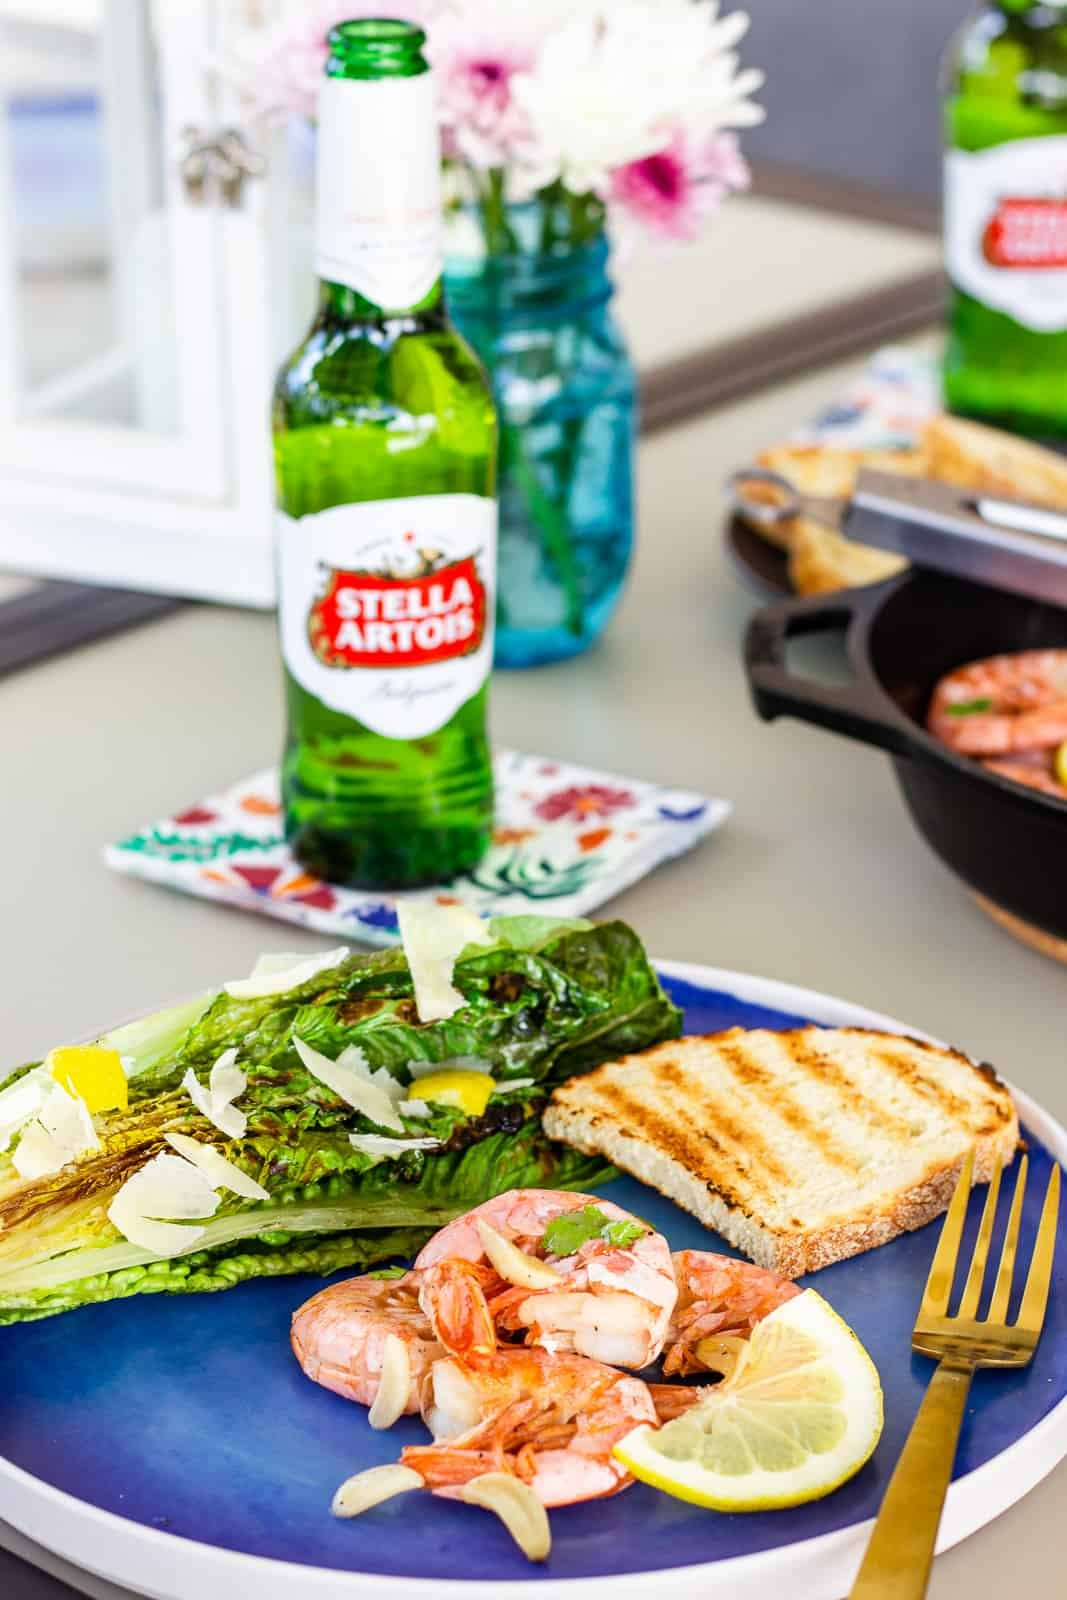 Blue plate with shrimp, slice of grilled bread, halved grilled romaine, and a bottle of Stella Artois Beer.